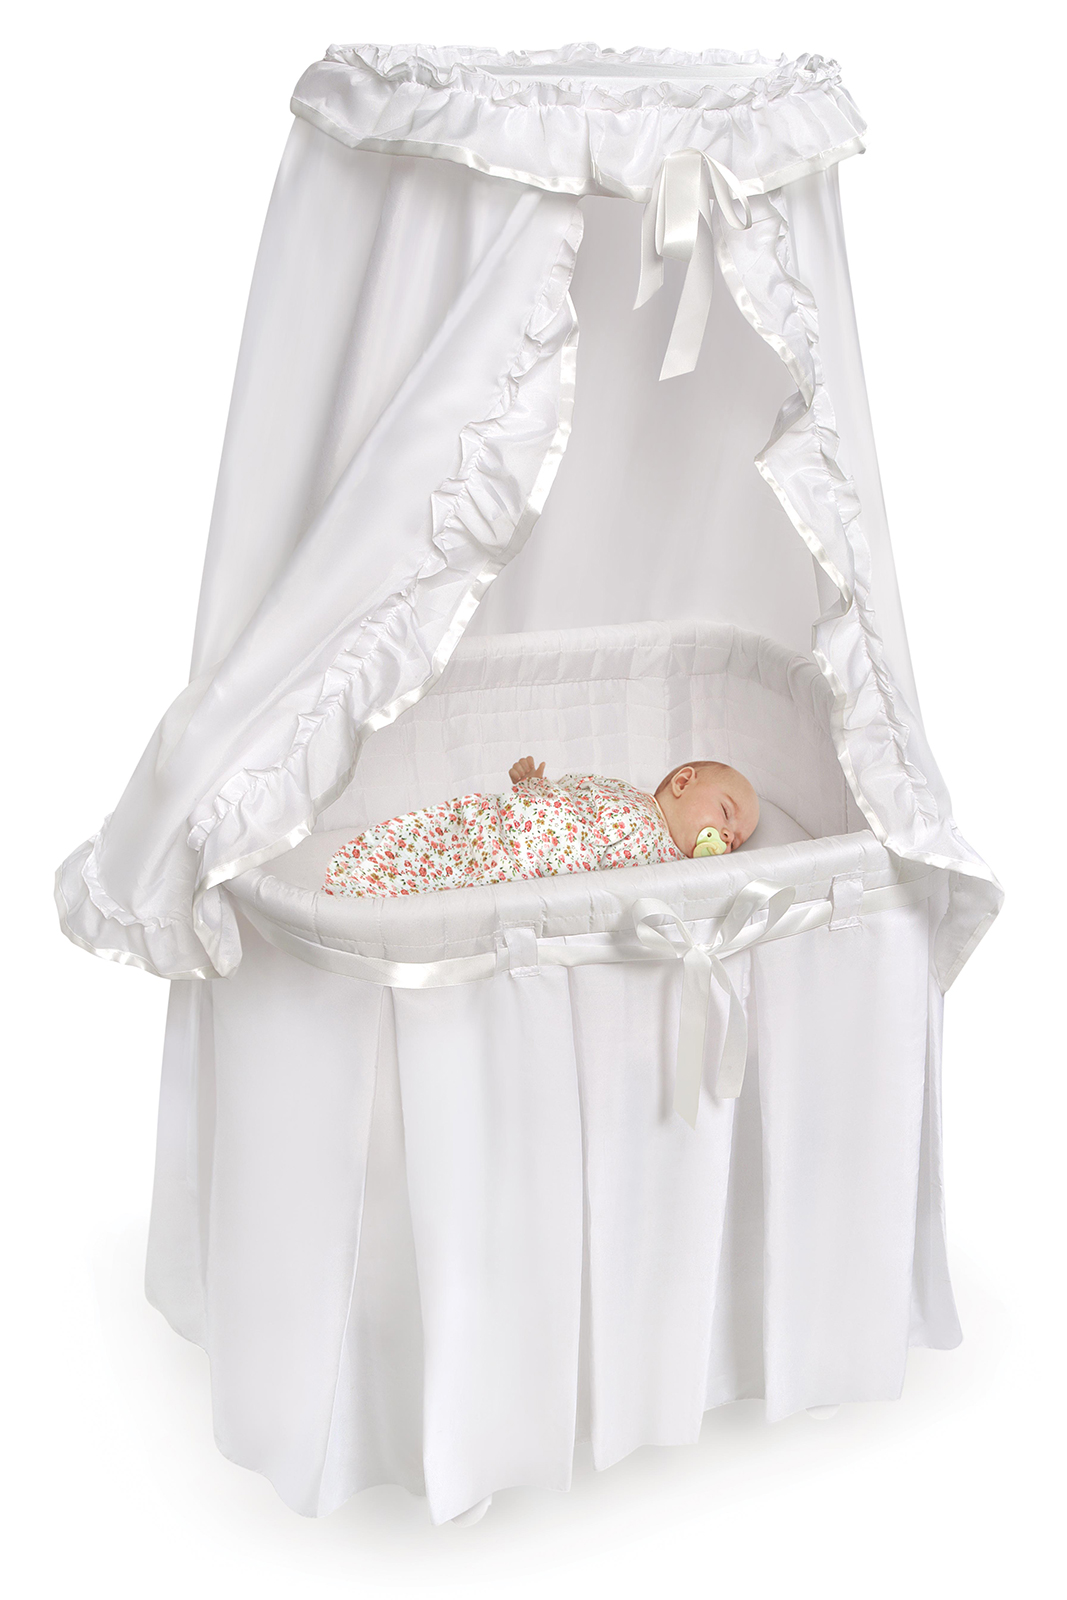 Badger Basket 30060 Majesty Bassinet With Canopy And